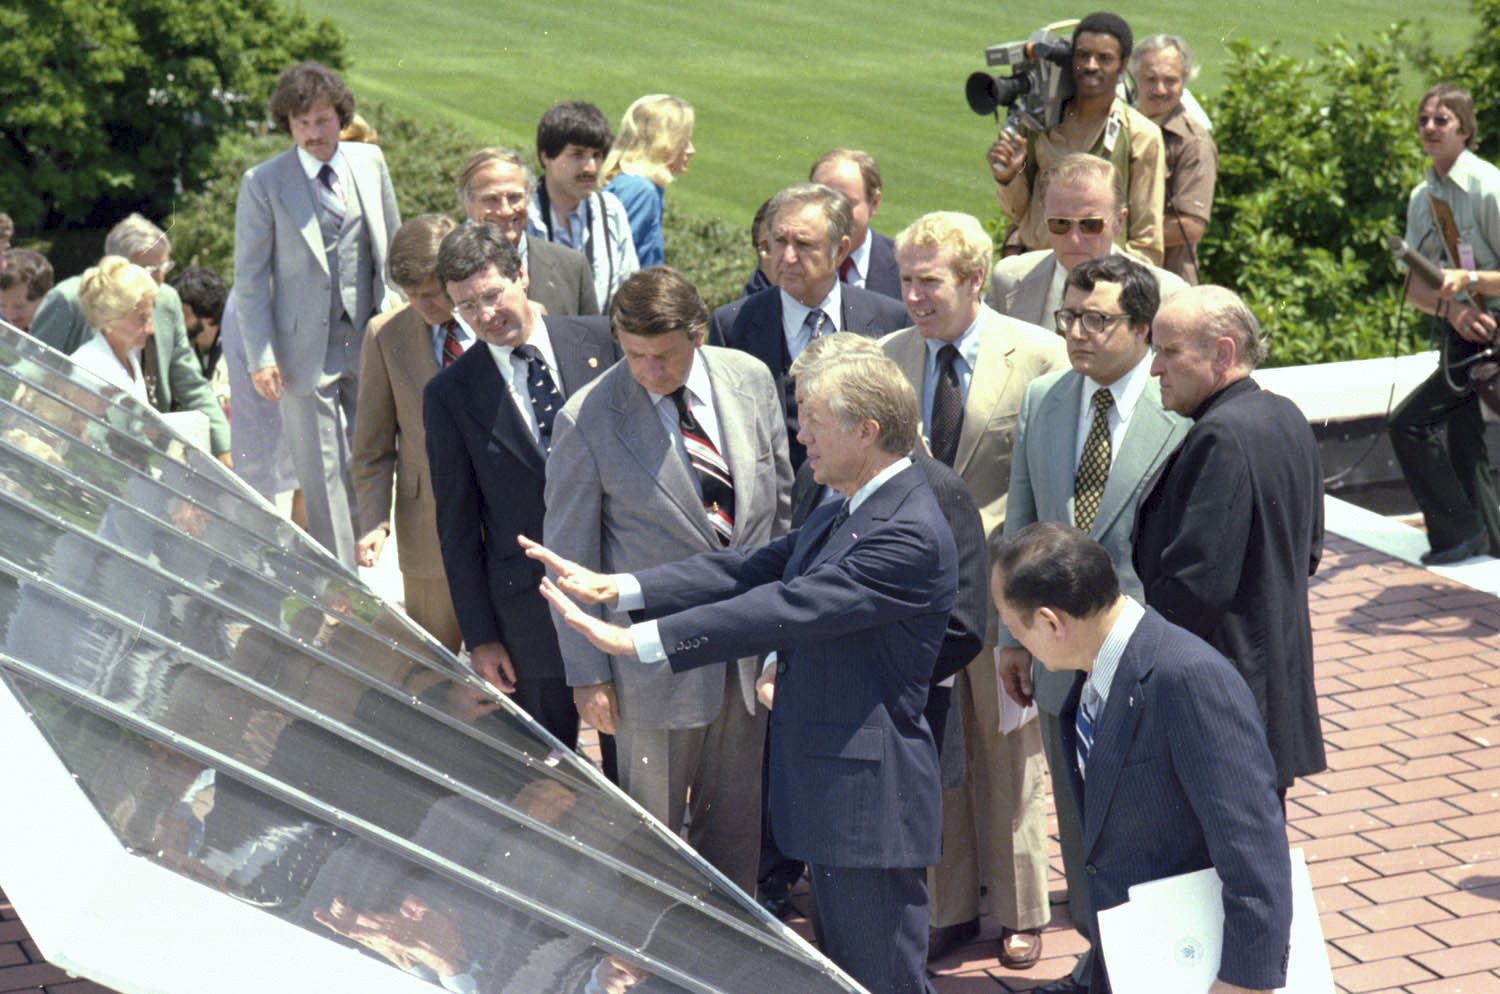 President Jimmy Carter shows off new solar panels on the West Wing that would provide hot water for the White House.